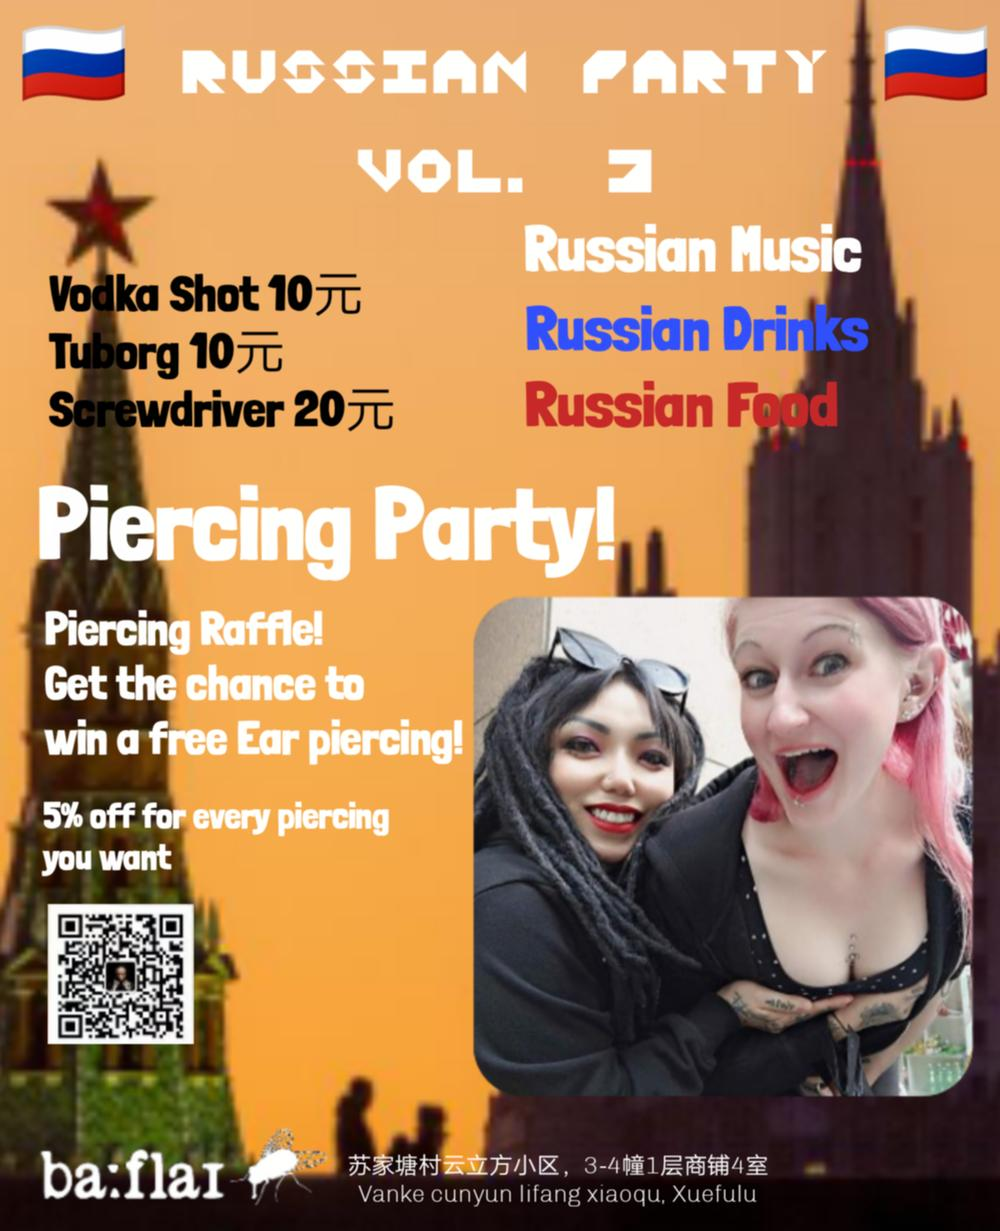 Russian Piercing Party Barfly Events Calendar Gokunming